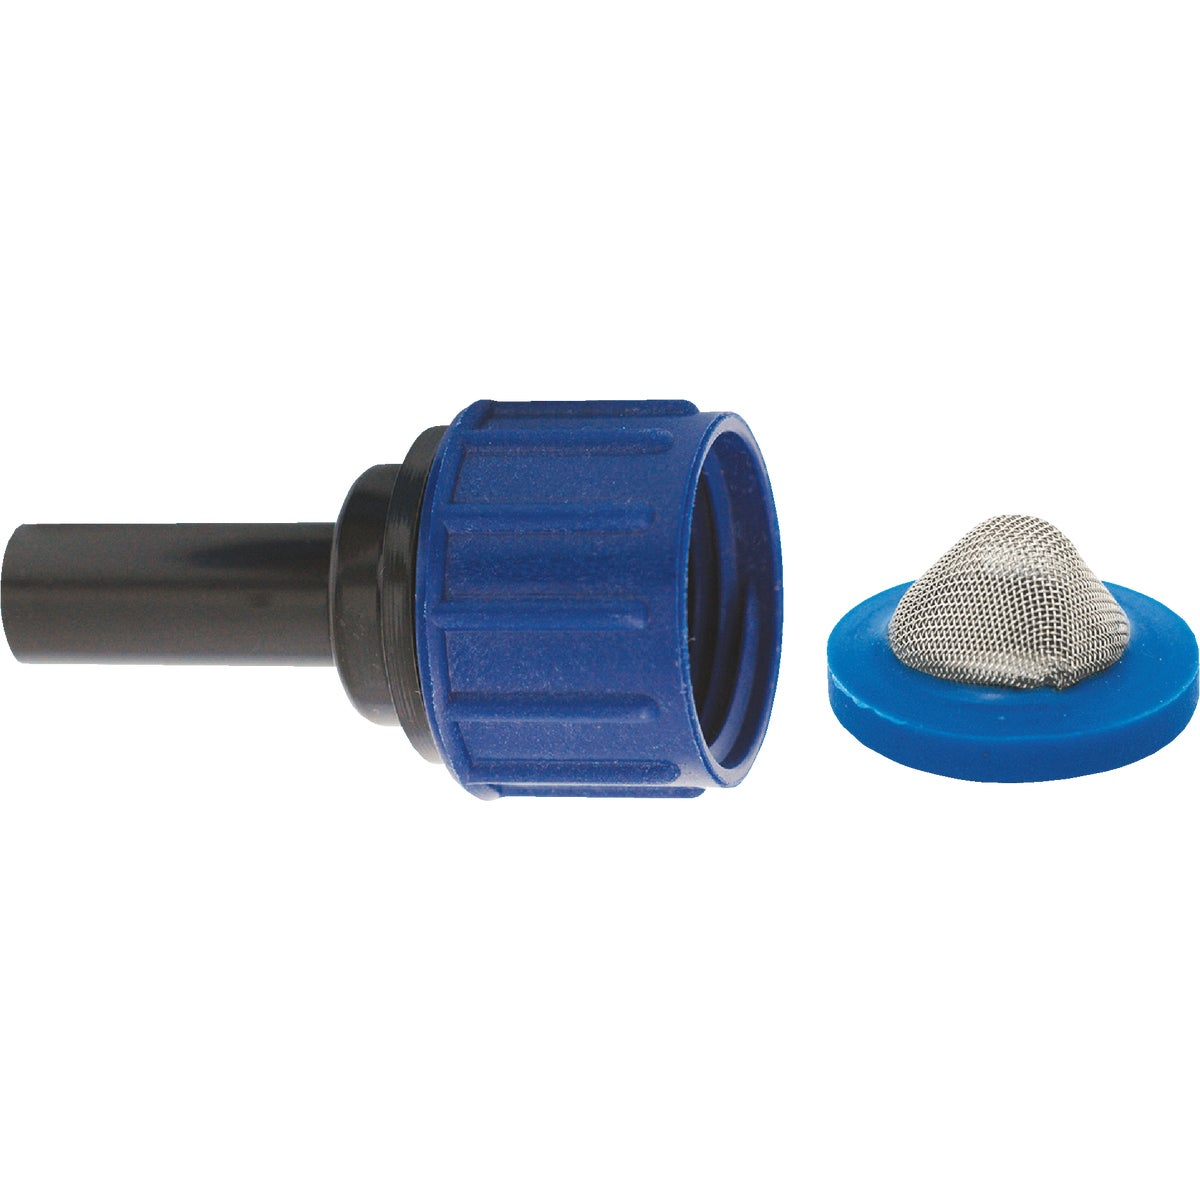 3/4X1/4 ADAPTER SWIVEL - R325CT by Raindrip Inc